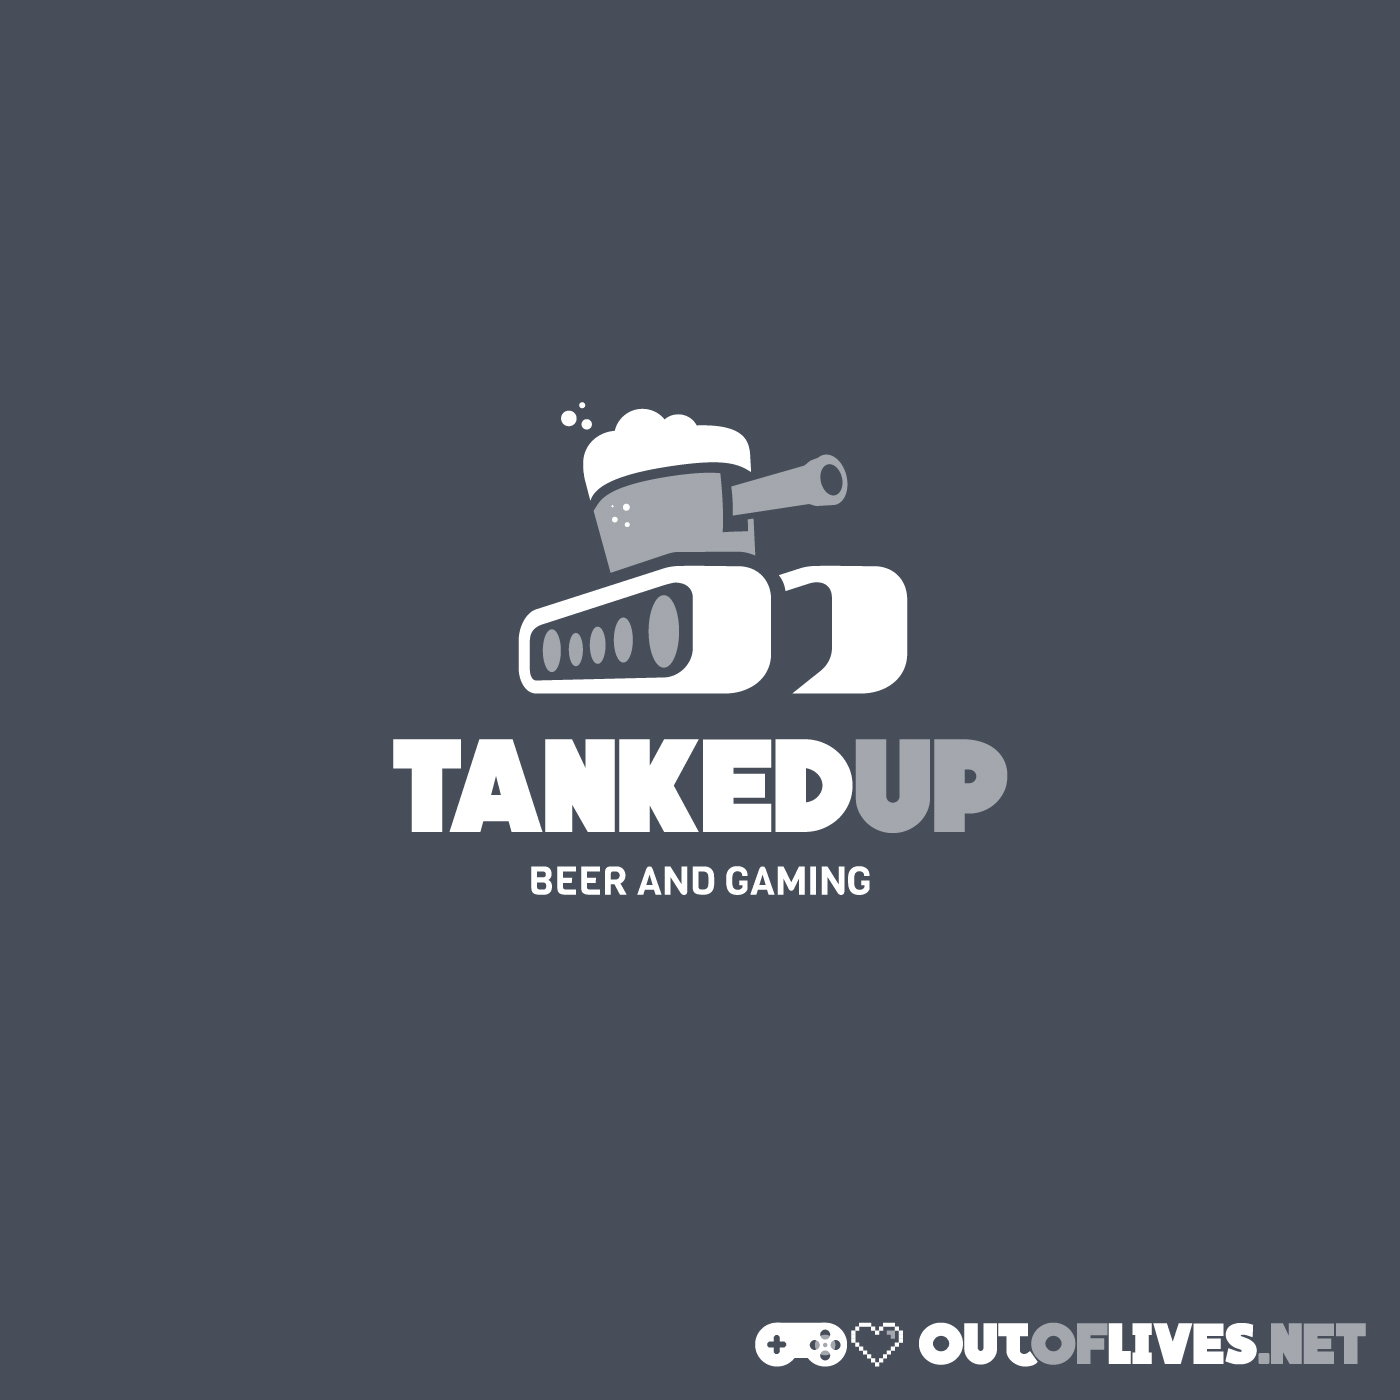 Tanked Up